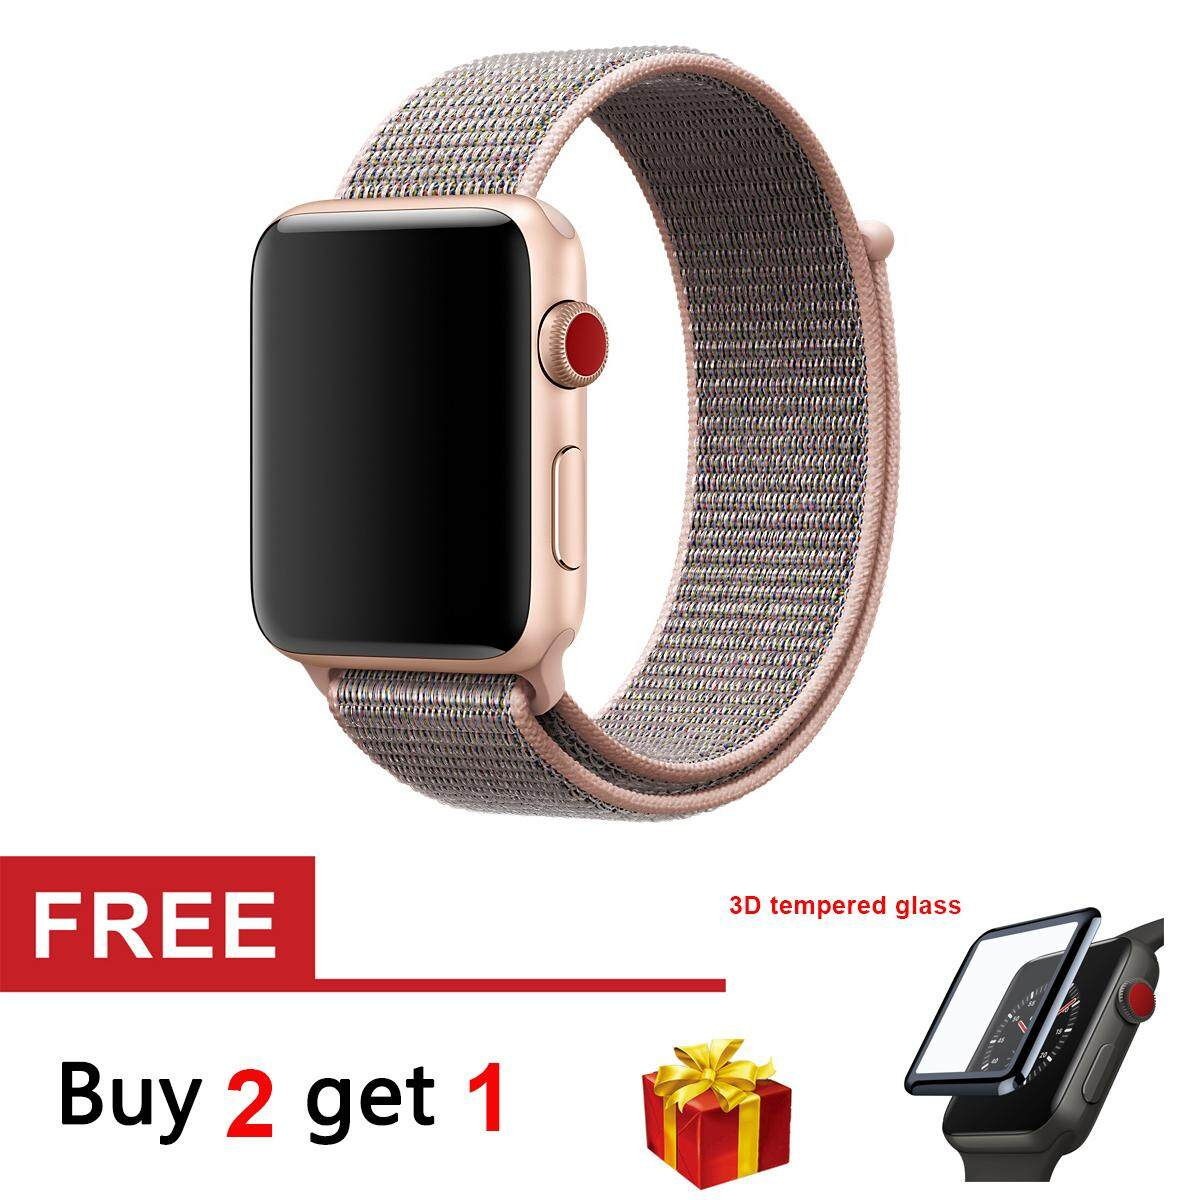 Woven Nylon Strap Soft Breathable Replacement Sport Loop Band for Apple Watch Series 3 2 1